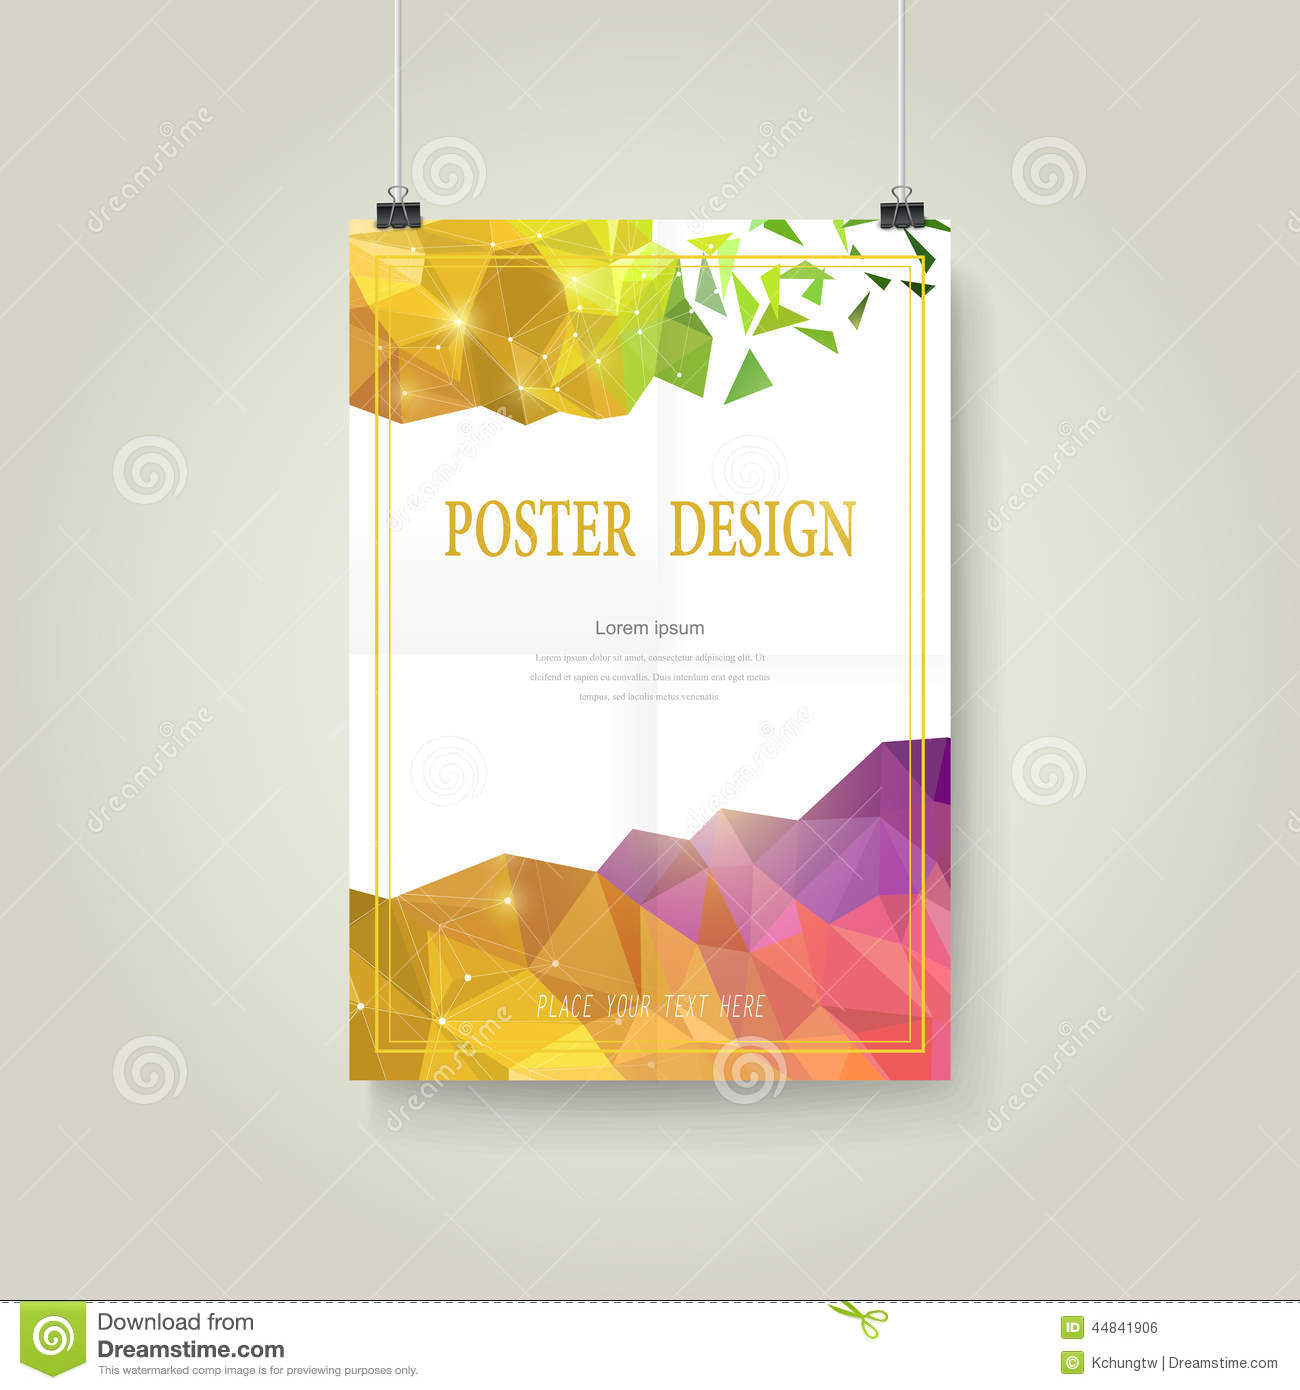 Abstract colorful geometric background poster template design.